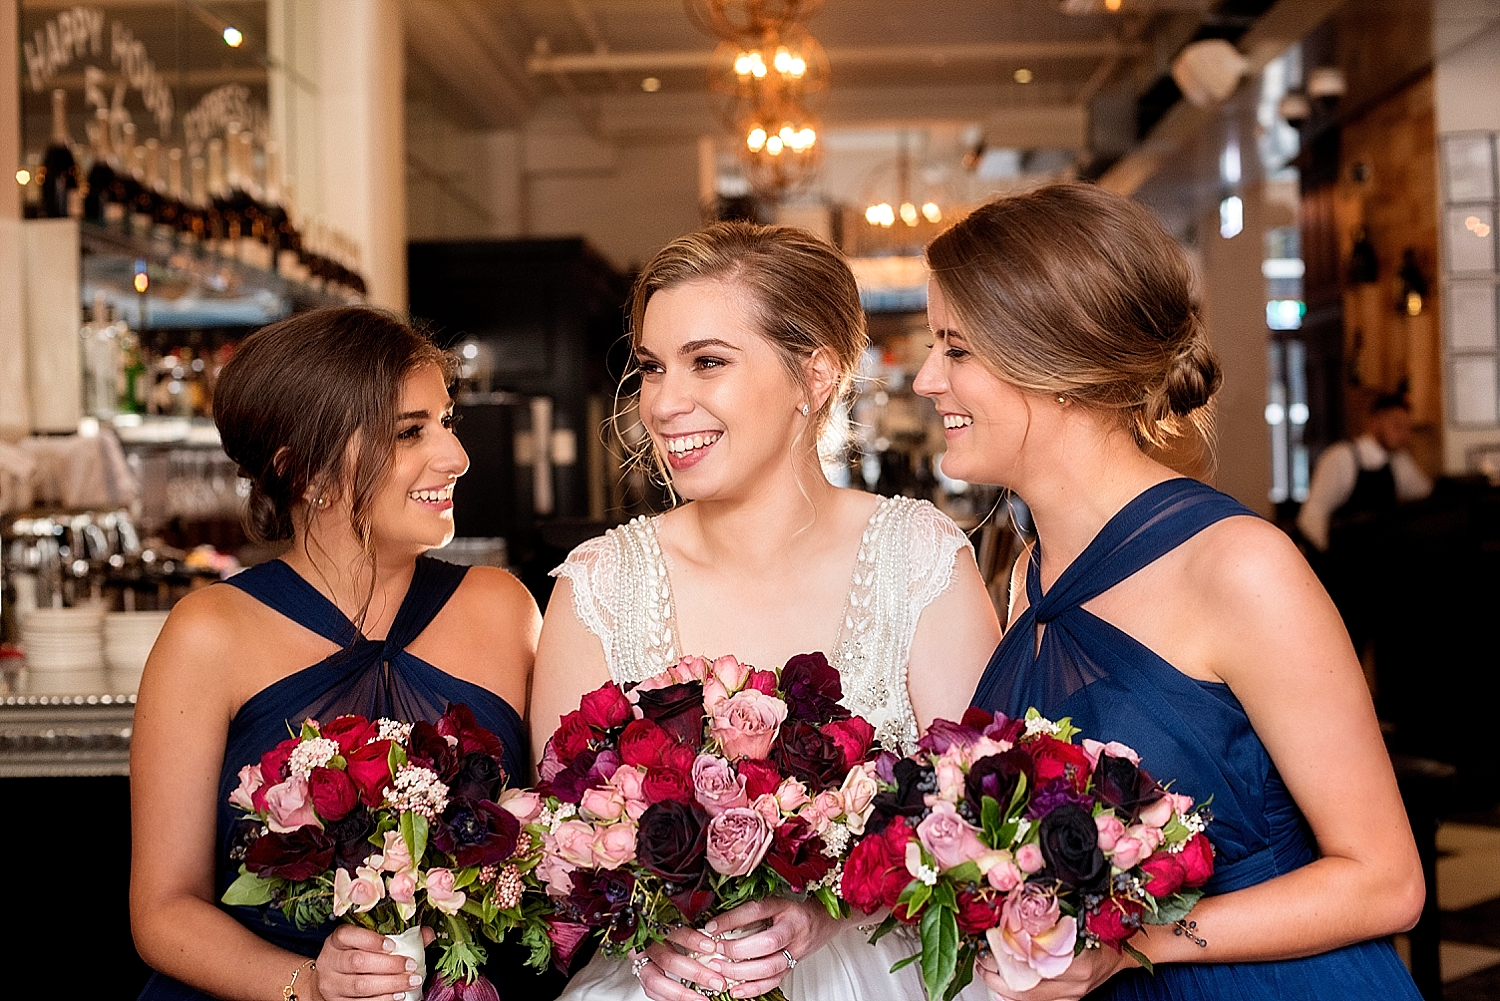 30_navy bridesmaid gowns.jpg